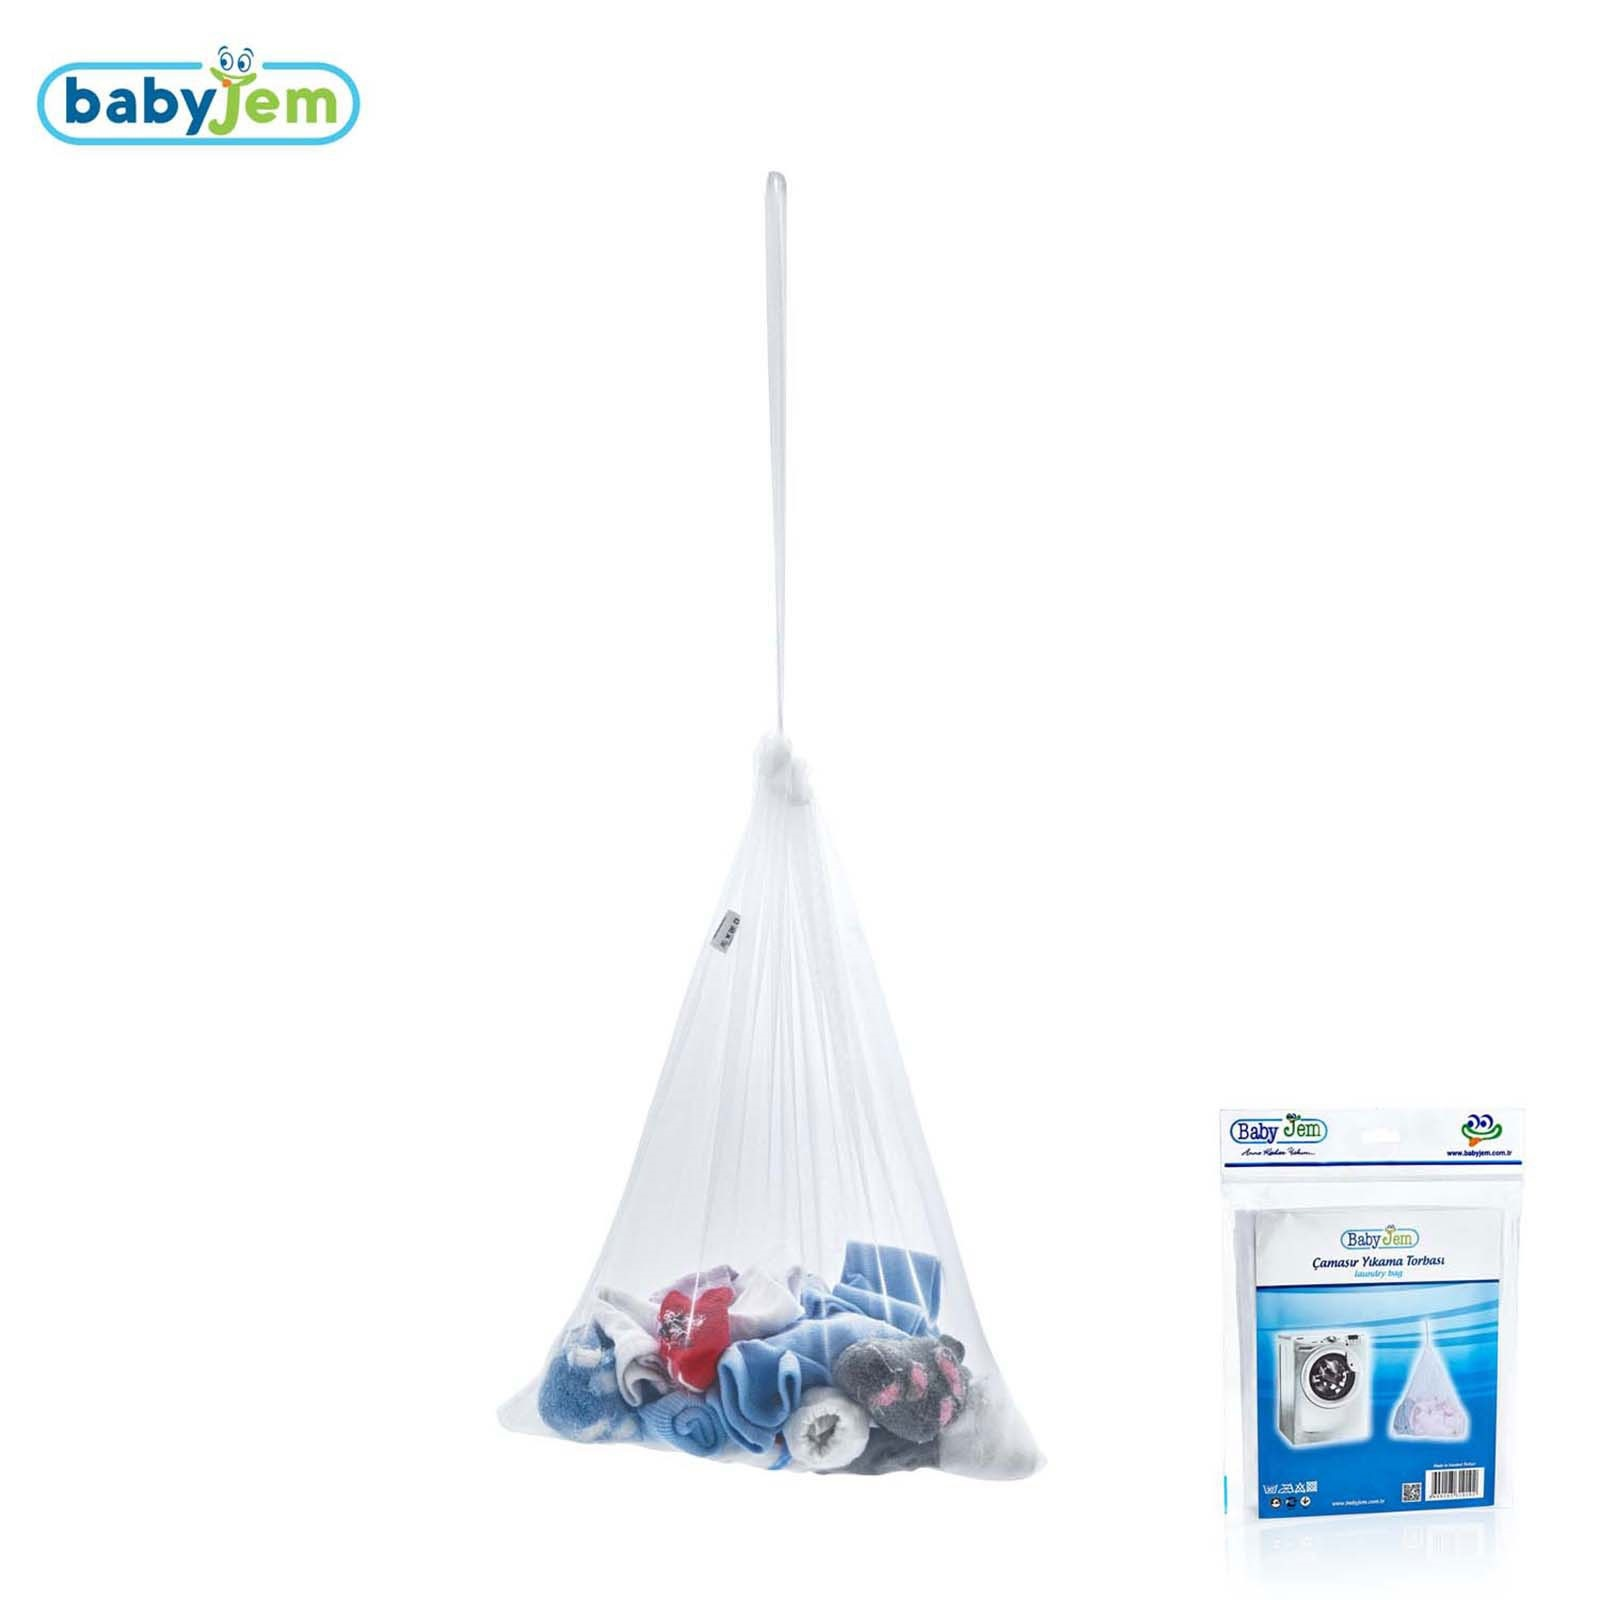 Ebebek Babyjem Baby Laundry Bag 46x36 Cm 1 Pcs White